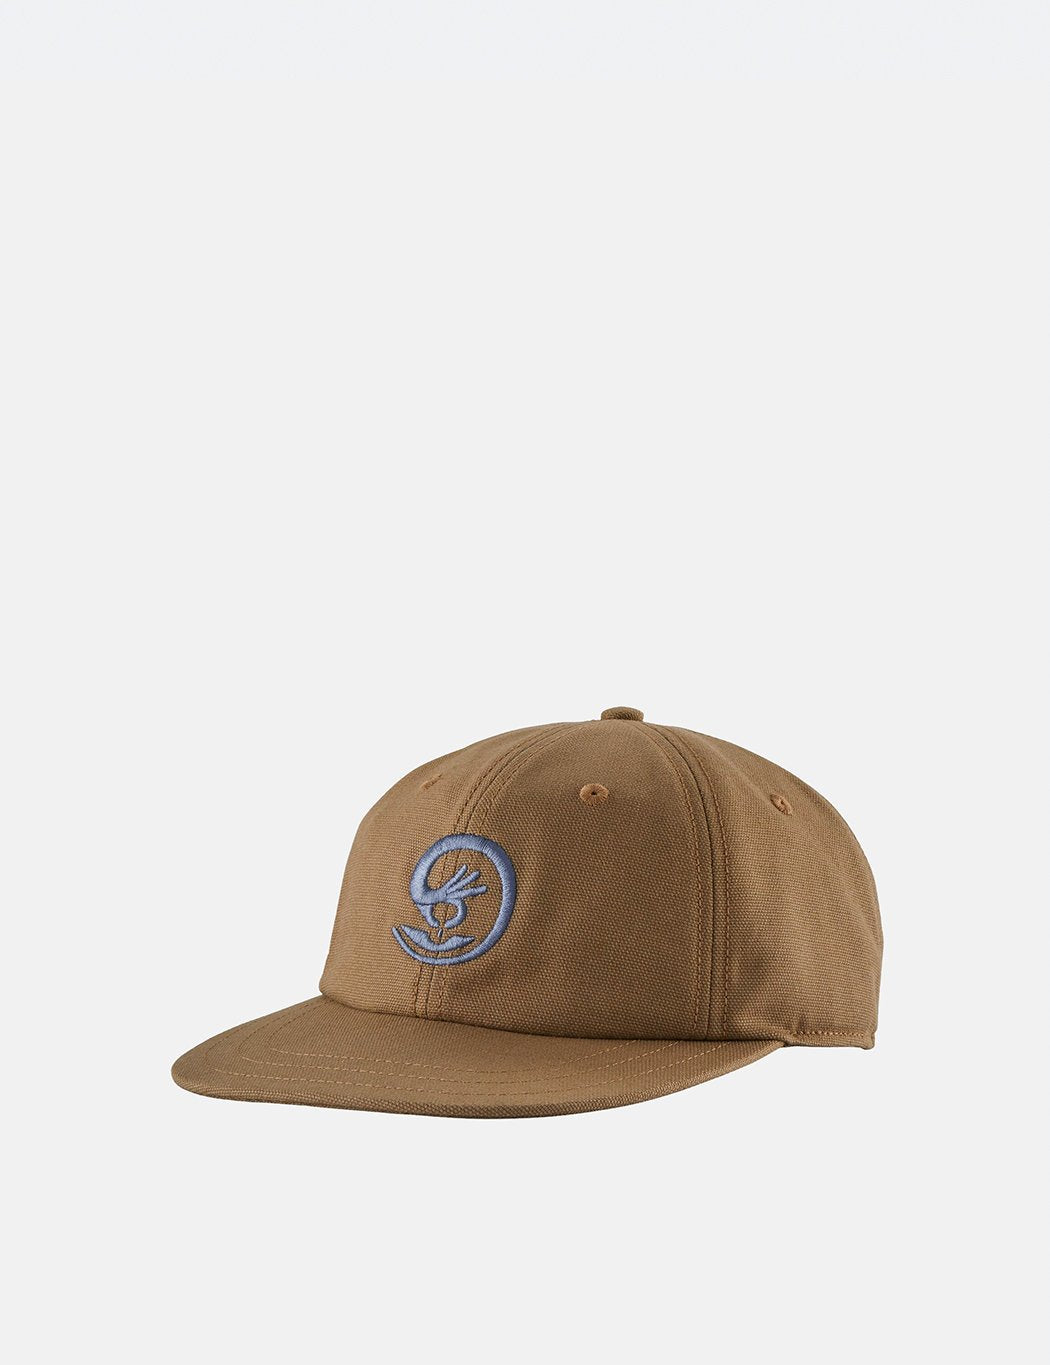 Patagonia Stand Up Cap (Sämling) - Mojave Khaki